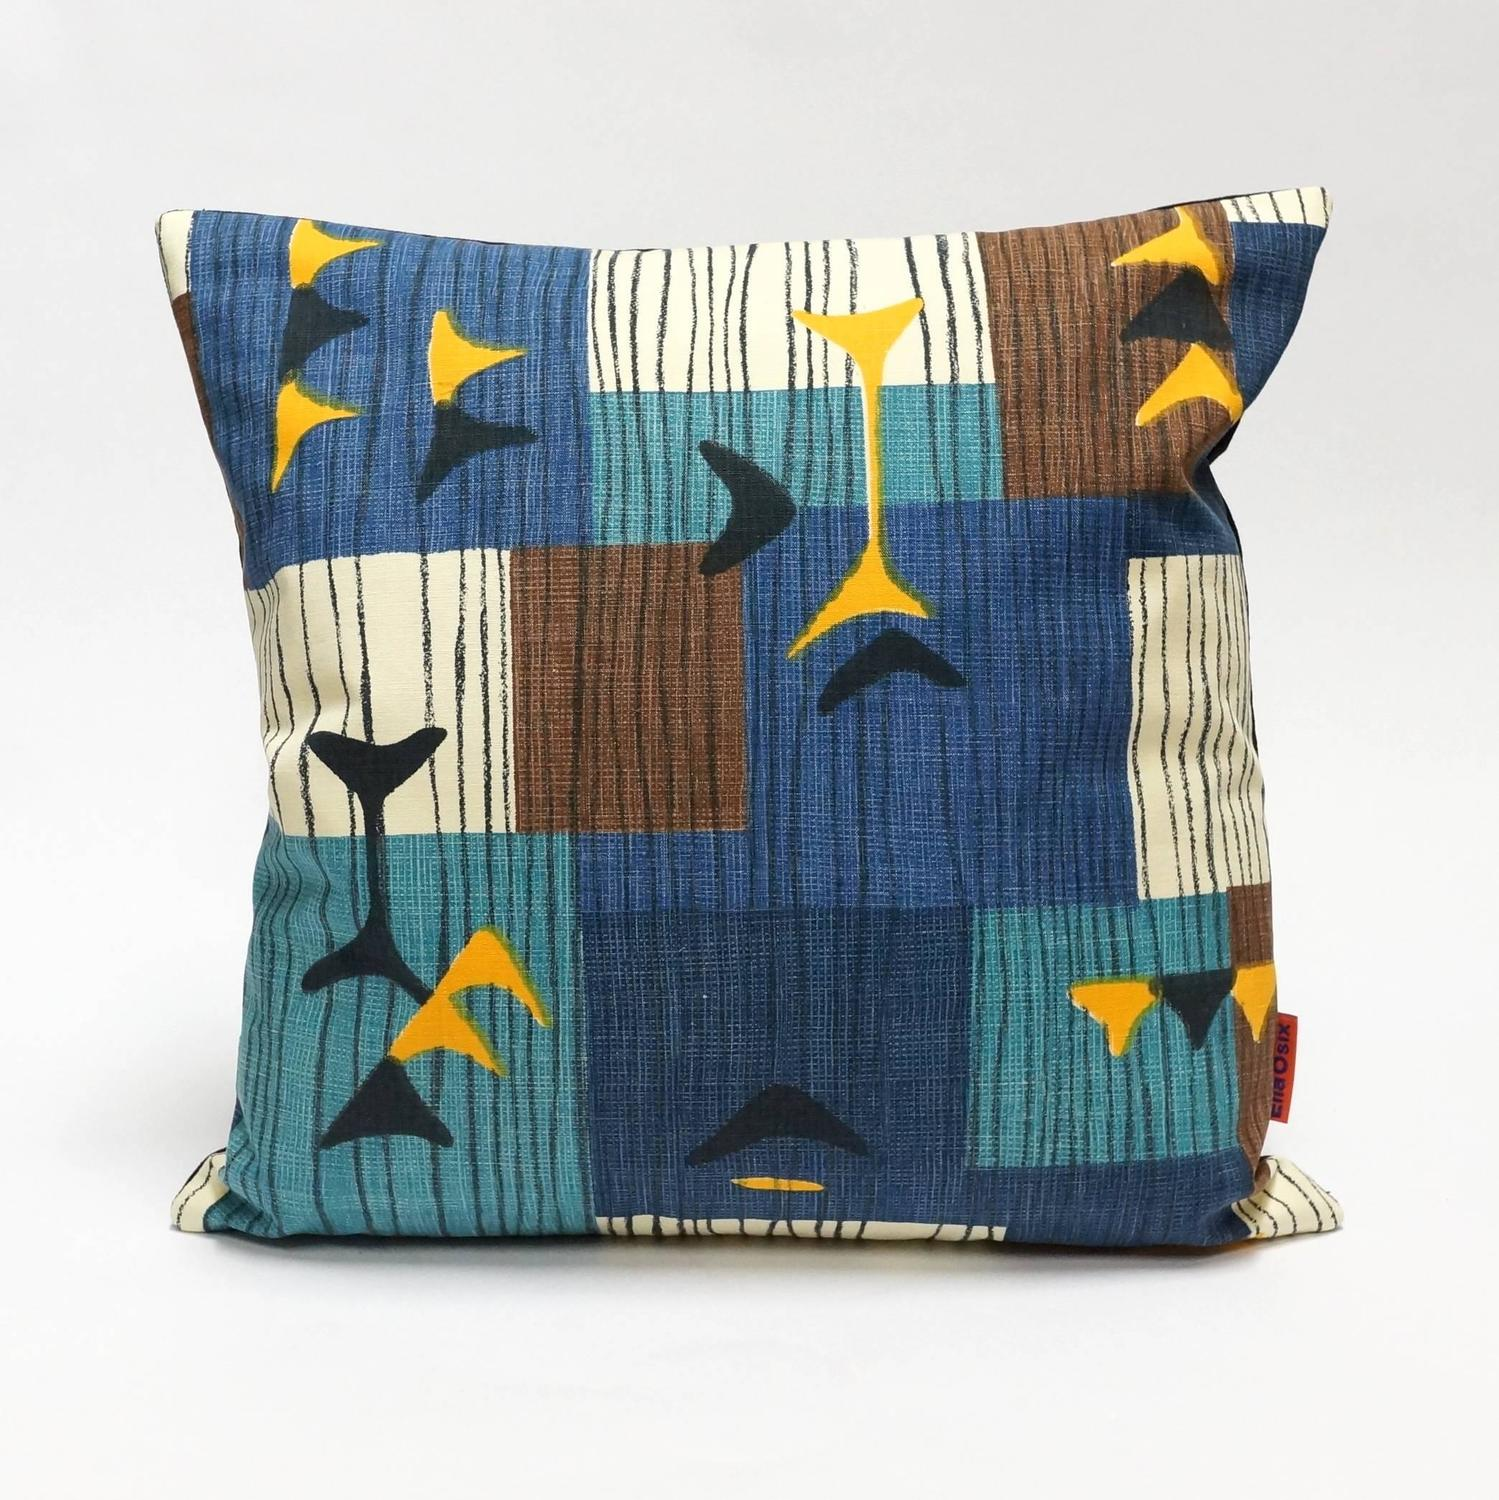 Mid Century Modern Accent Pillows : Blue Mid-Century Modern Accent Pillows by EllaOsix For Sale at 1stdibs